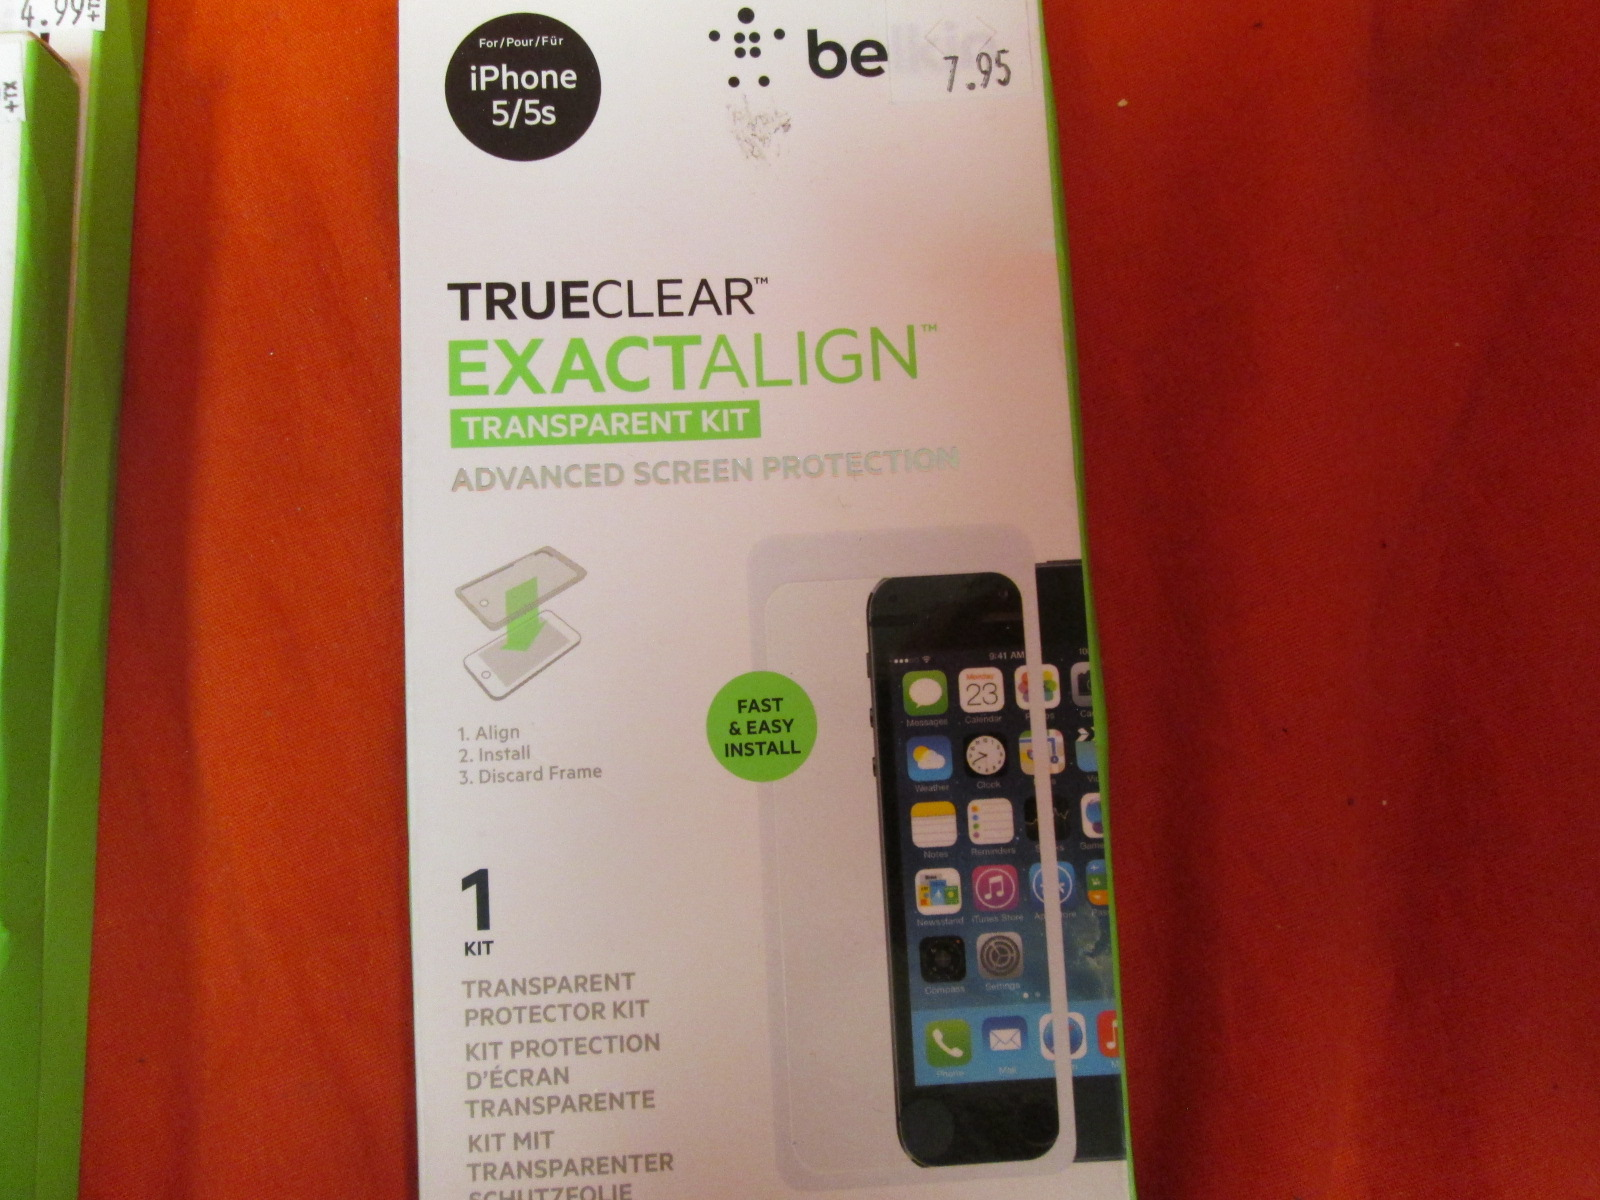 Belkin 0914BF iPhone 5 And 5S True Clear Exactalign Screen Protector